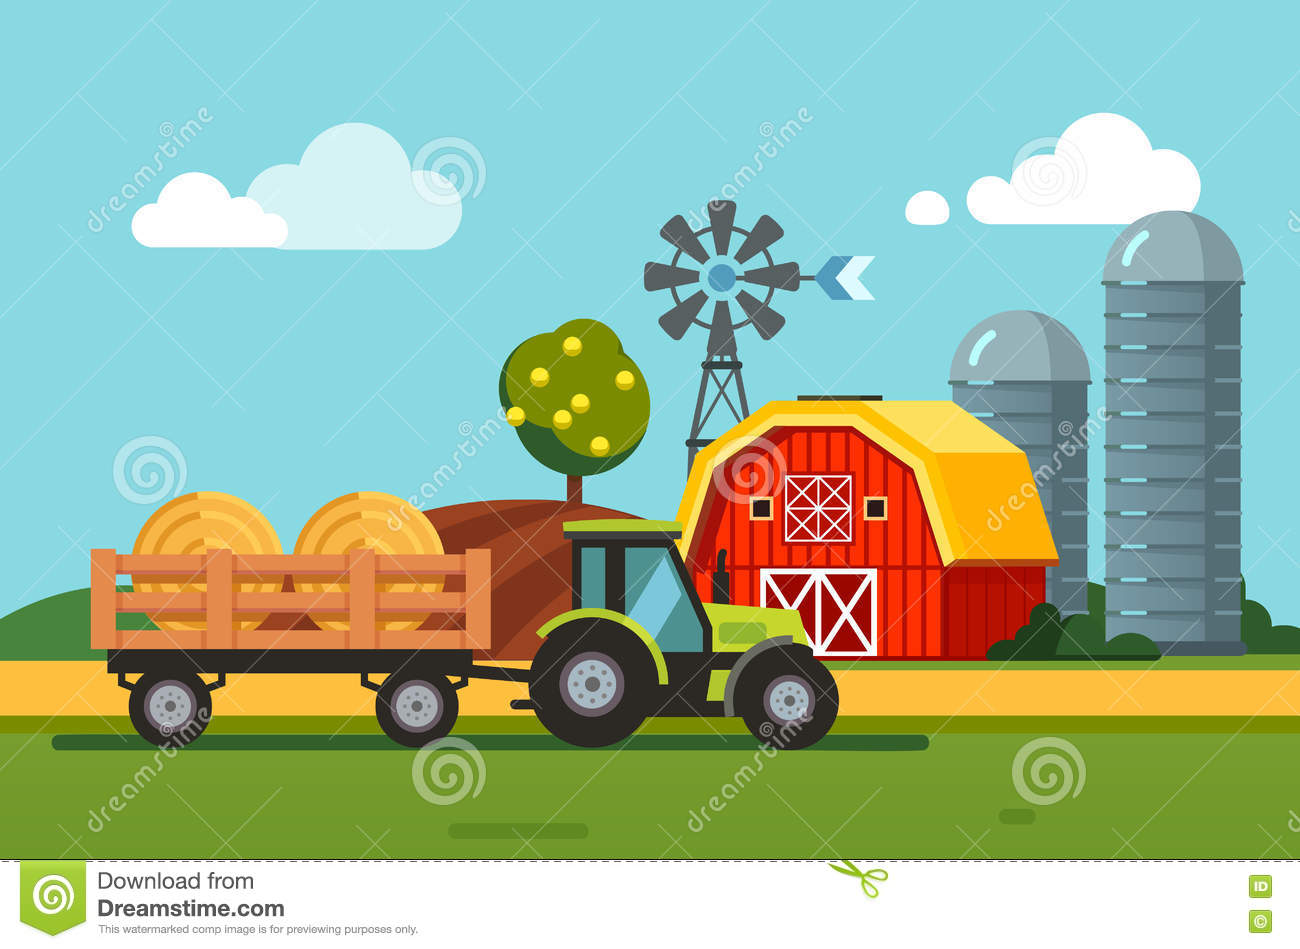 Hay Farmer Tractor Cartoon : Tractor towing hay bales loaded to a trailer stock vector